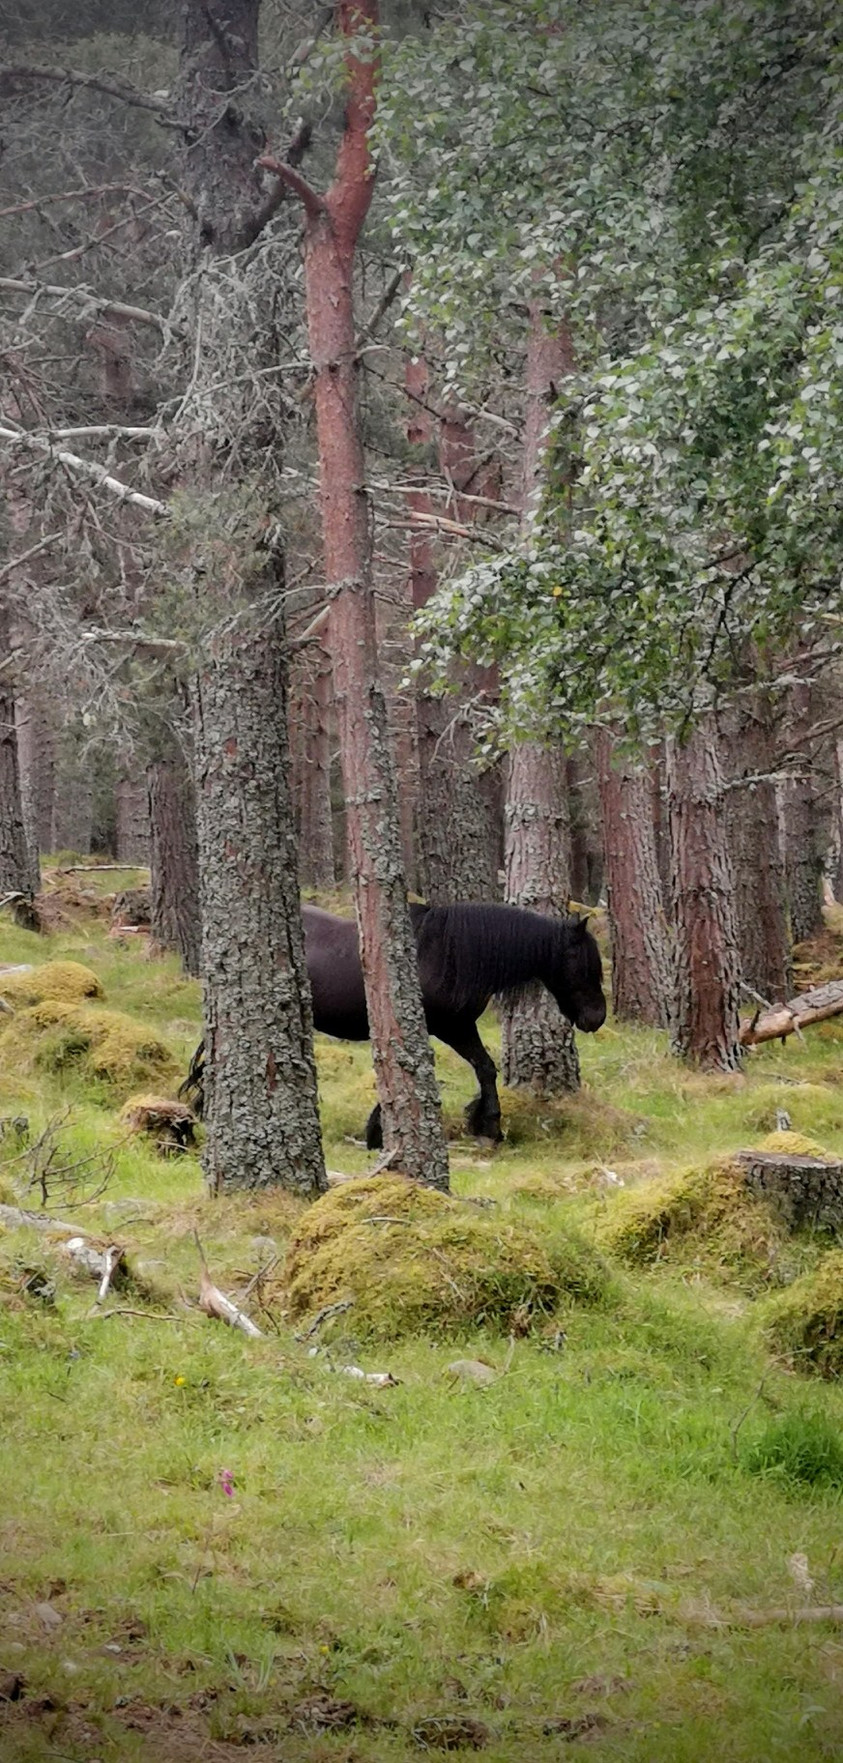 A black horse wanders through the woodland